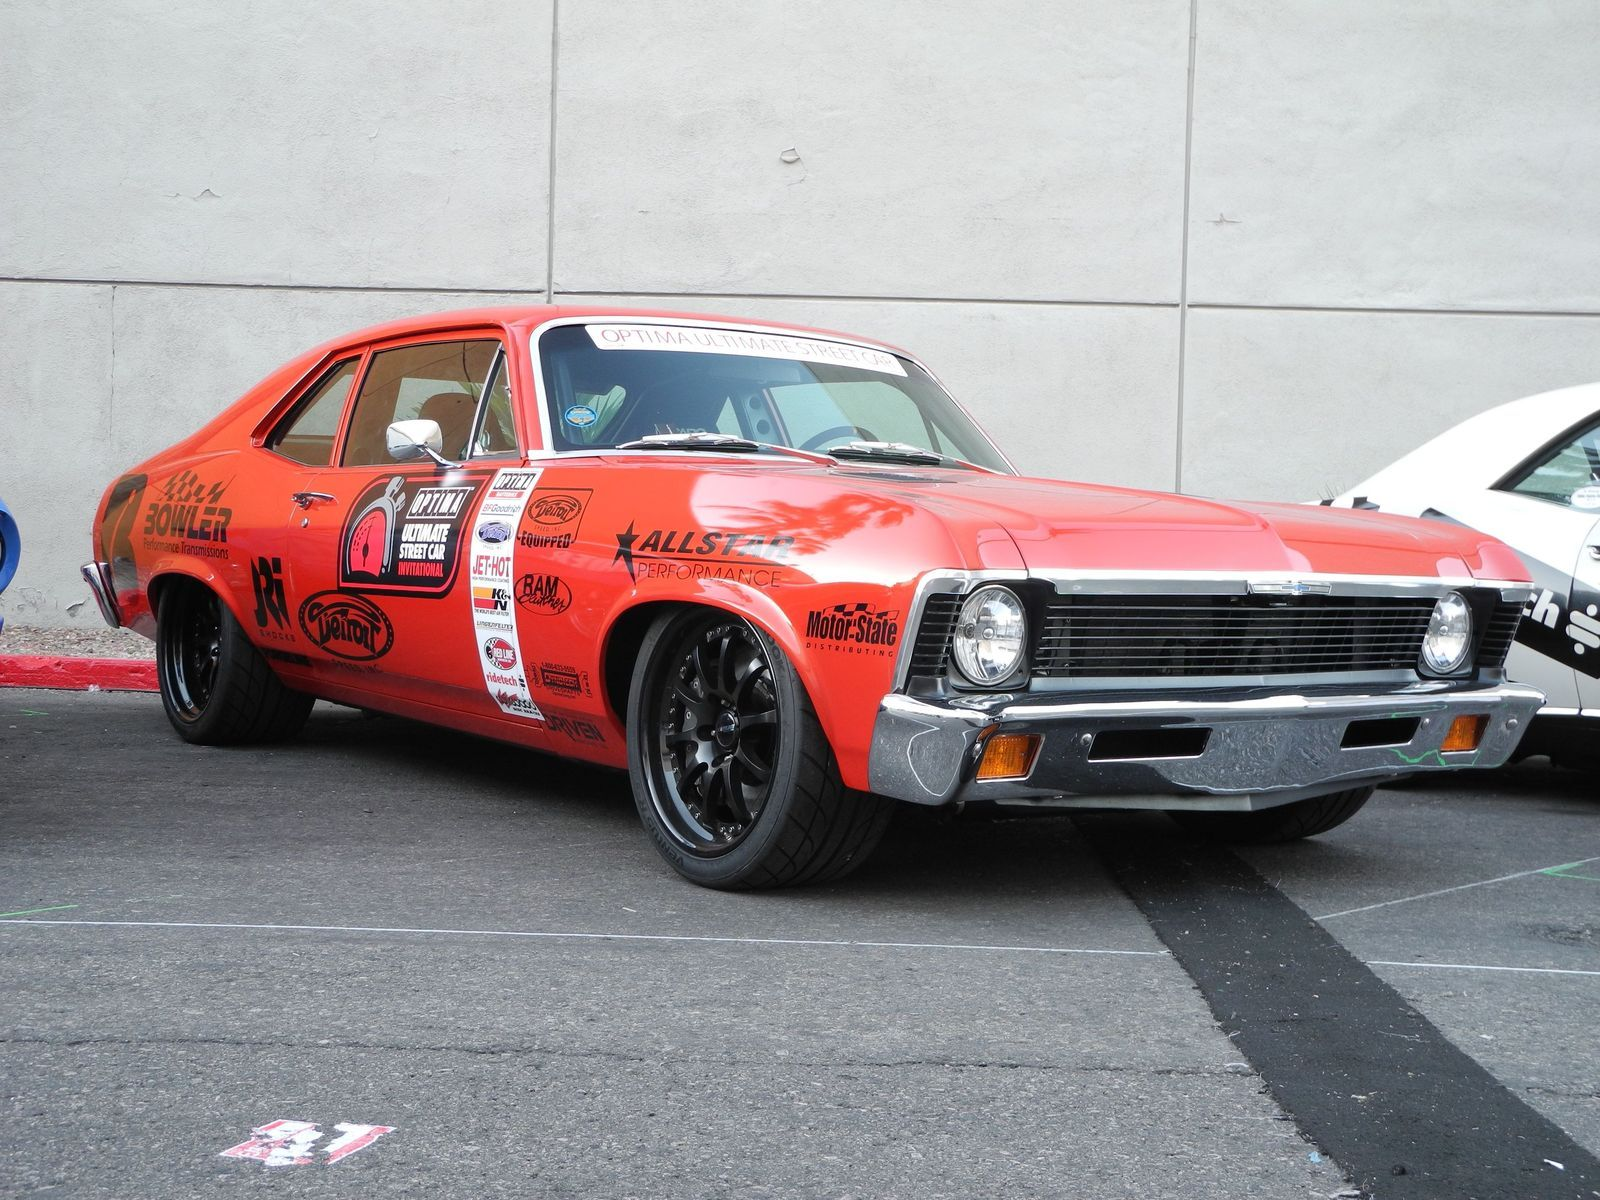 1972 Chevrolet Nova | Billy Utley's 1972 Chevy Nova on Forgeline ZX3R Wheels at the 2014 SEMA Show